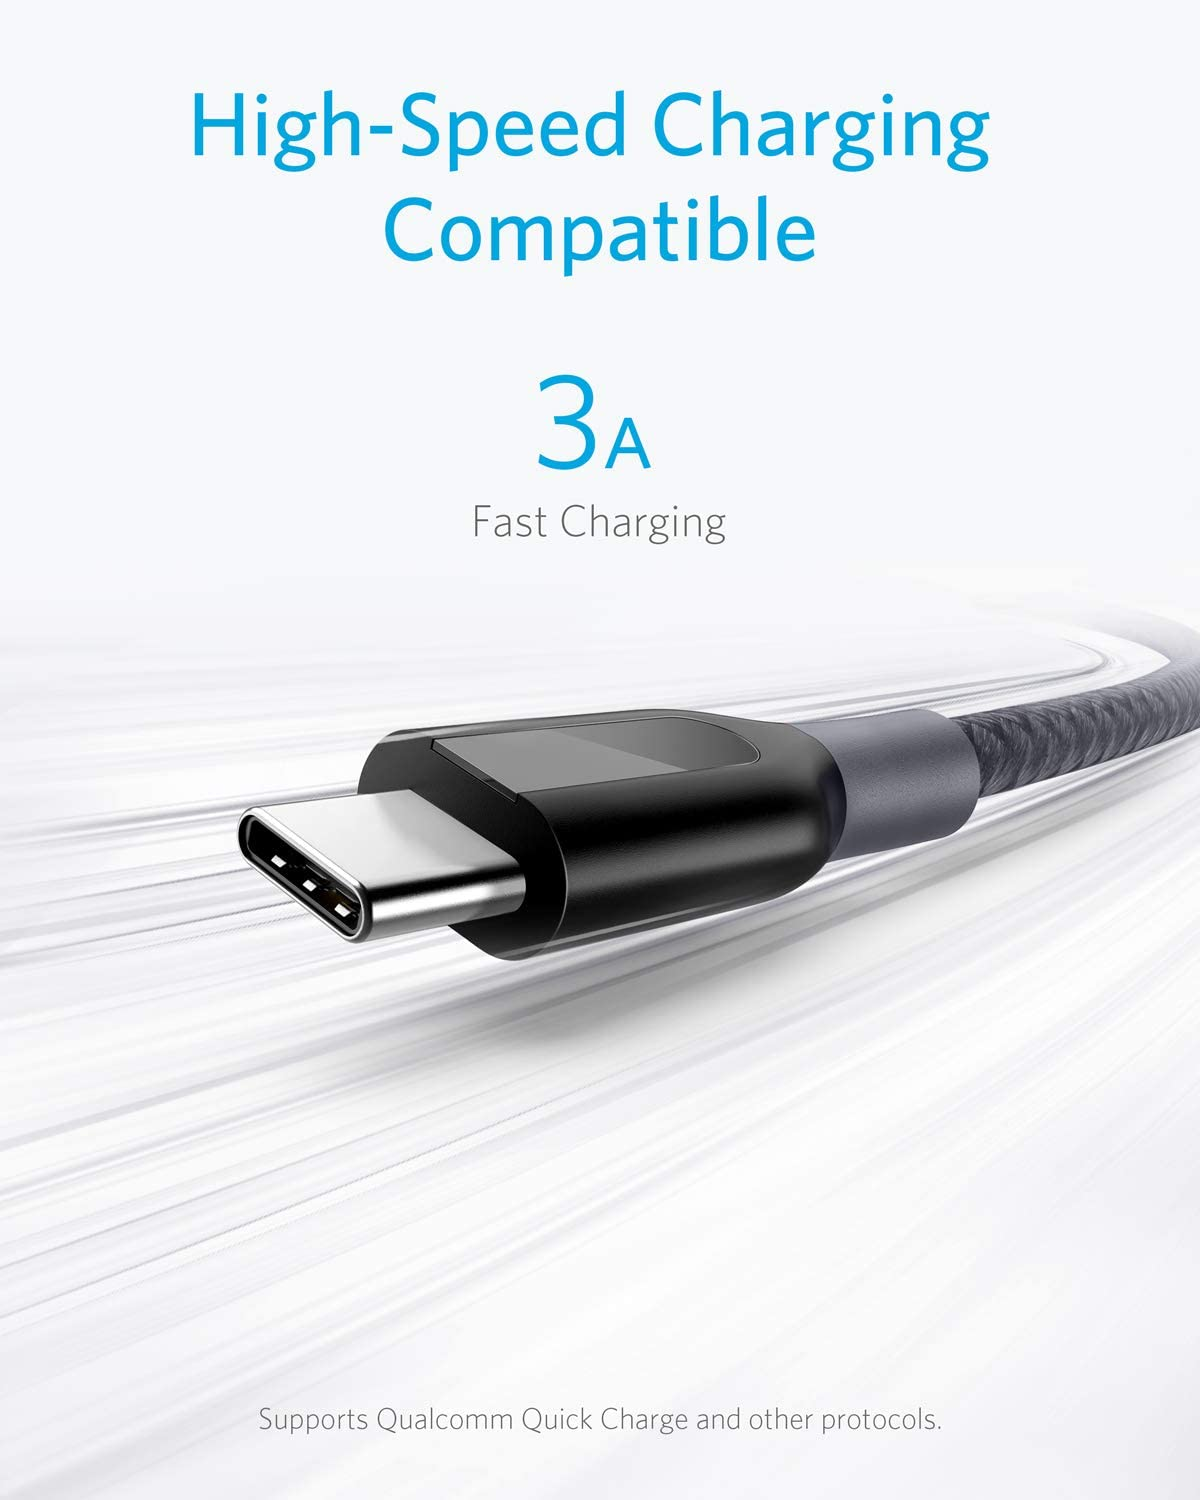 USB Type C Cable Powerline+ USB-C to USB-A for Samsung Galaxy S10// S9 // S9+ // S8 // S8+ and More Double-Braided Nylon Fast Charging Cable Anker 3-Pack 6ft Gray